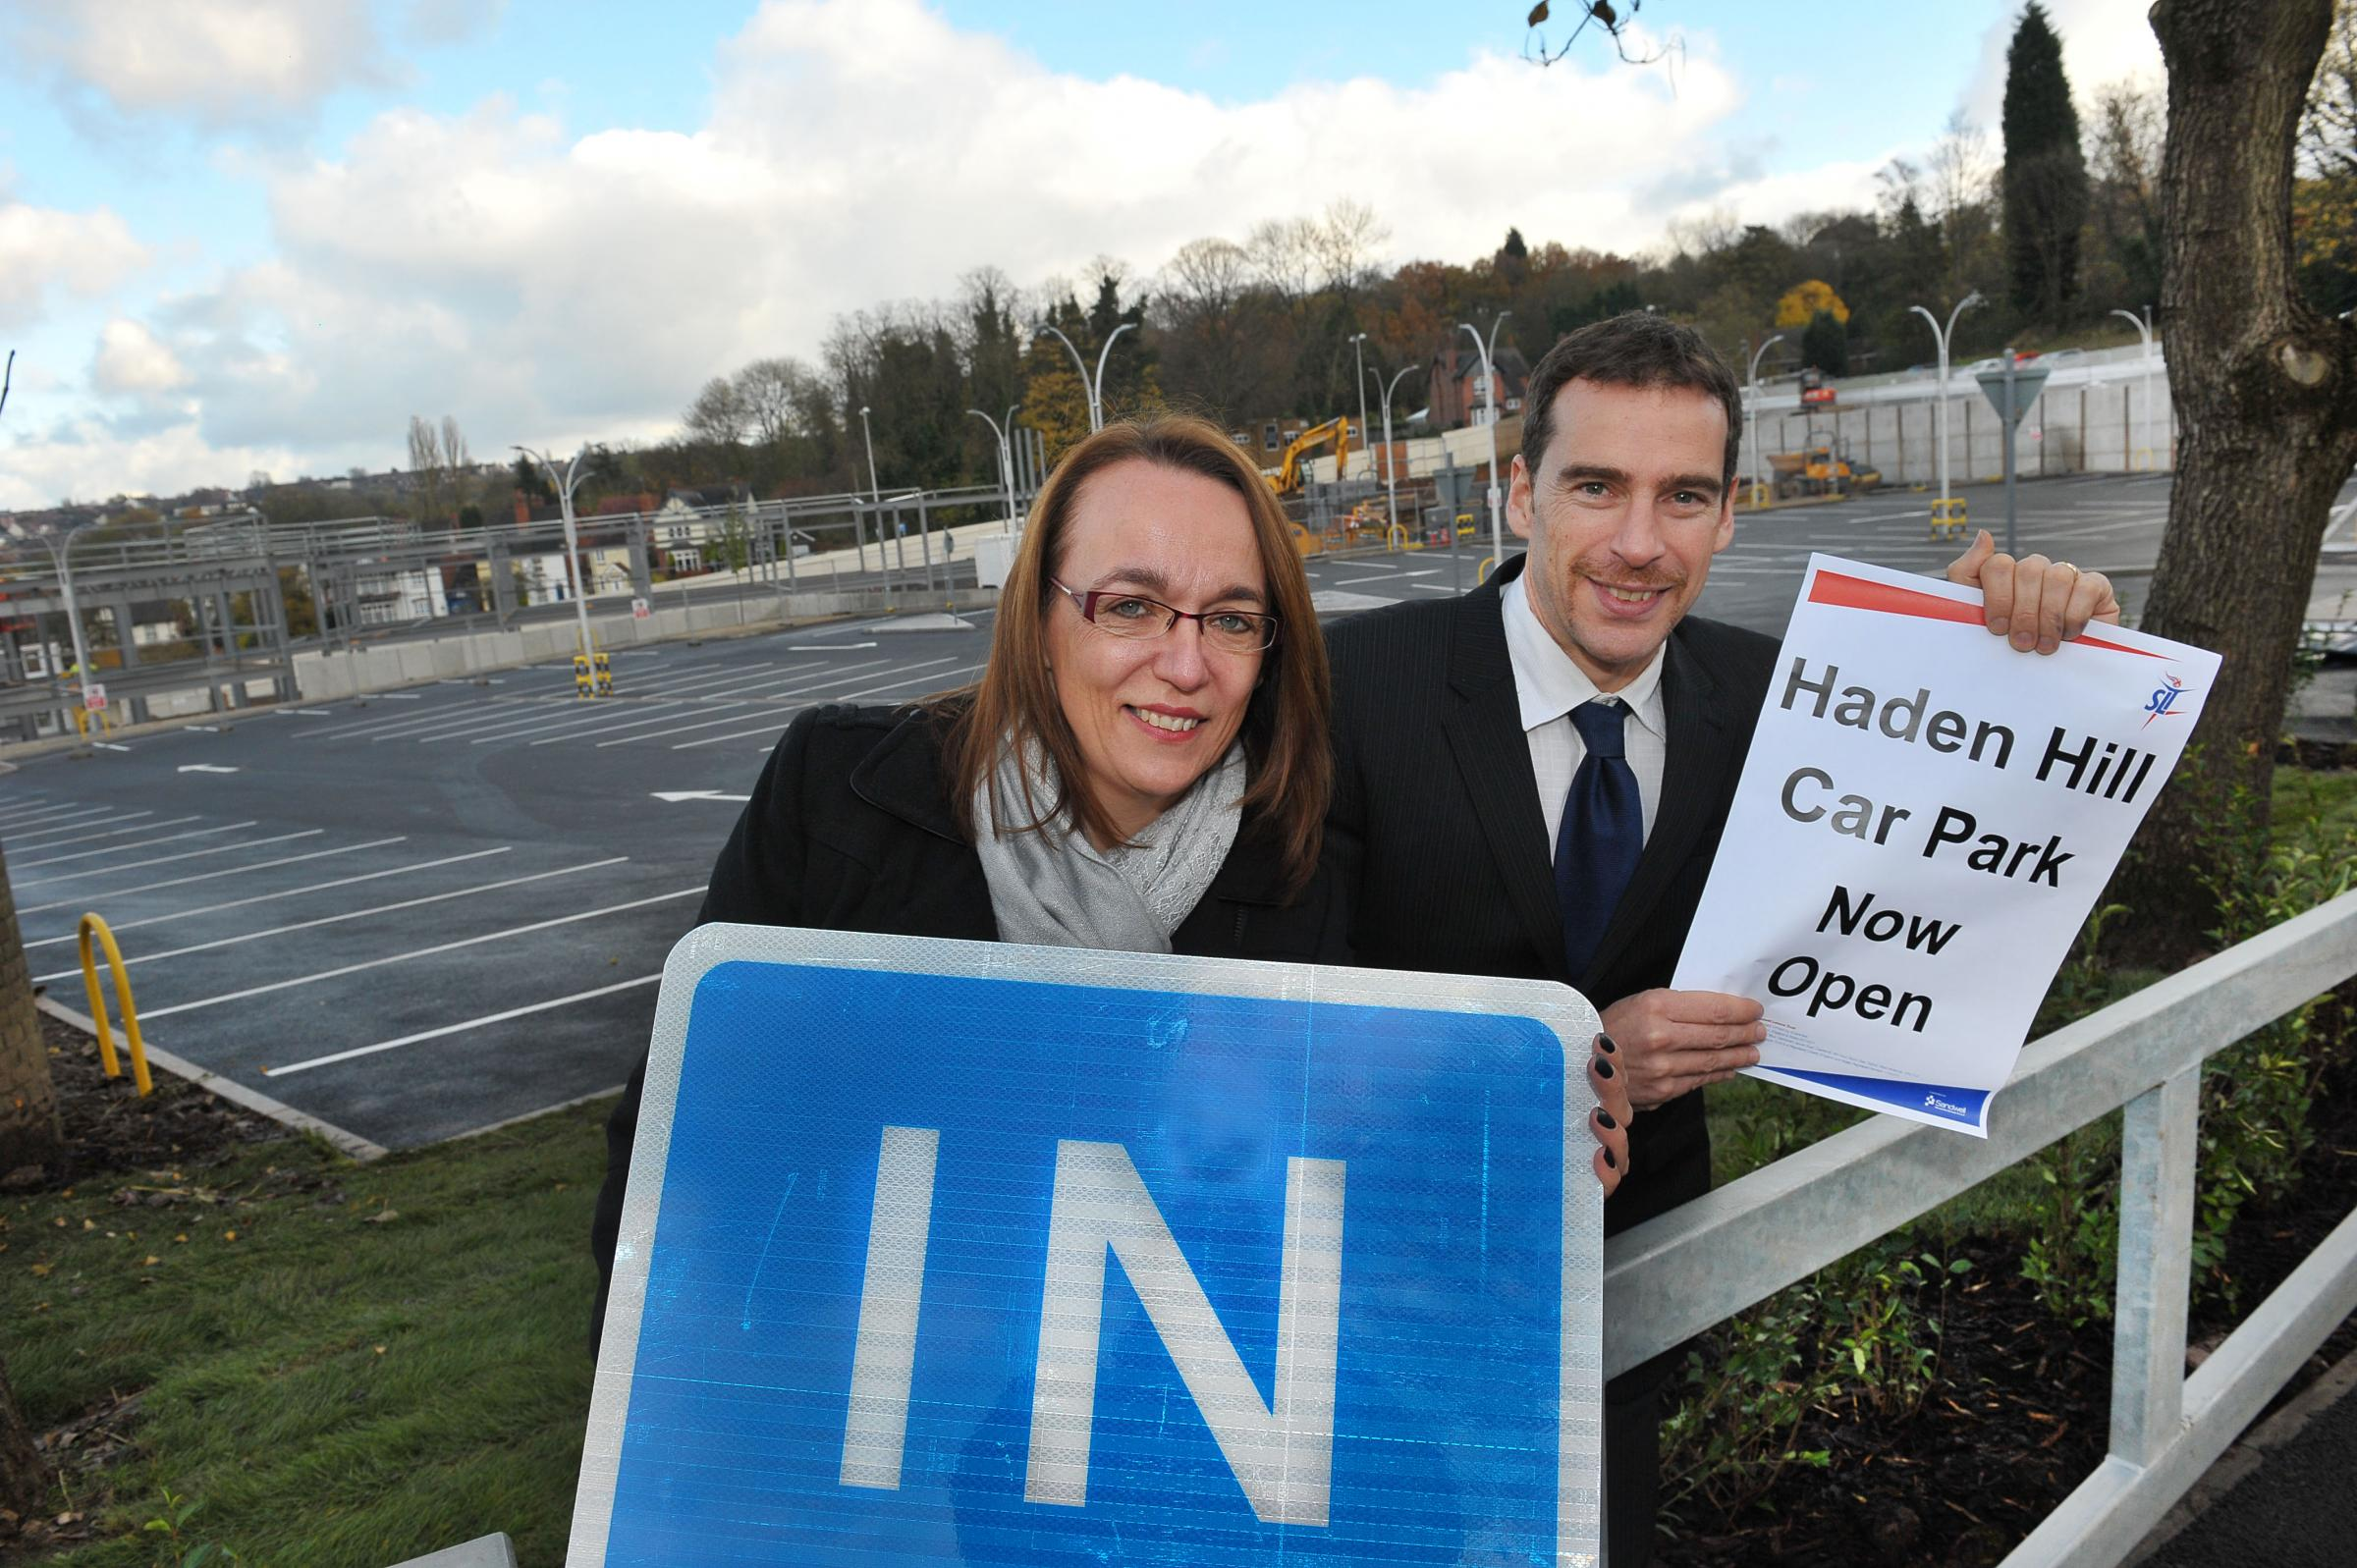 Parking paradise: SLT's chairperson, Lois Taylor, and Haden Hill Leisure Centre manager, Stu